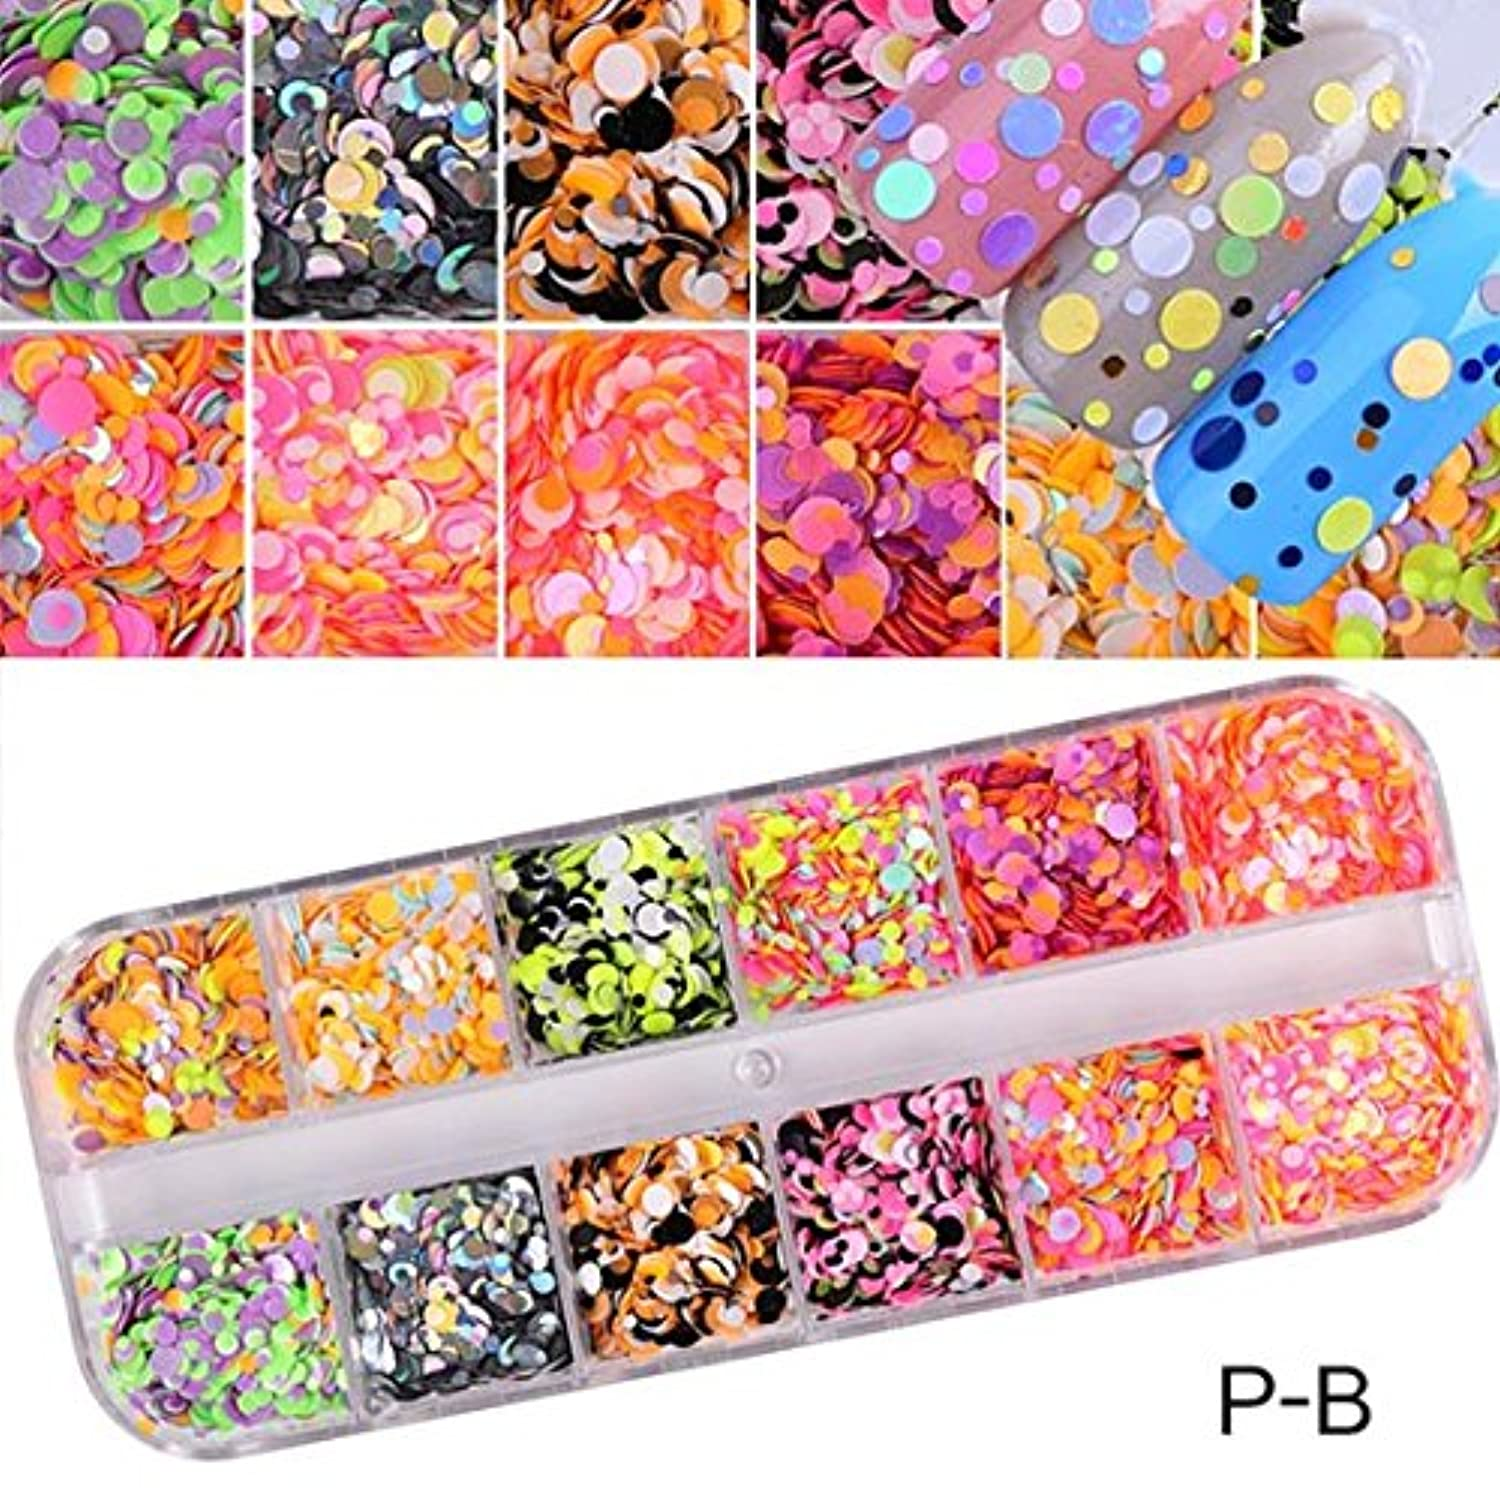 1 Set Dazzling Round Nail Glitter Sequins Dust Mixed 12 Grids 1/2/3mm DIY Charm Polish Flakes Decorations Manicure Tips Kit